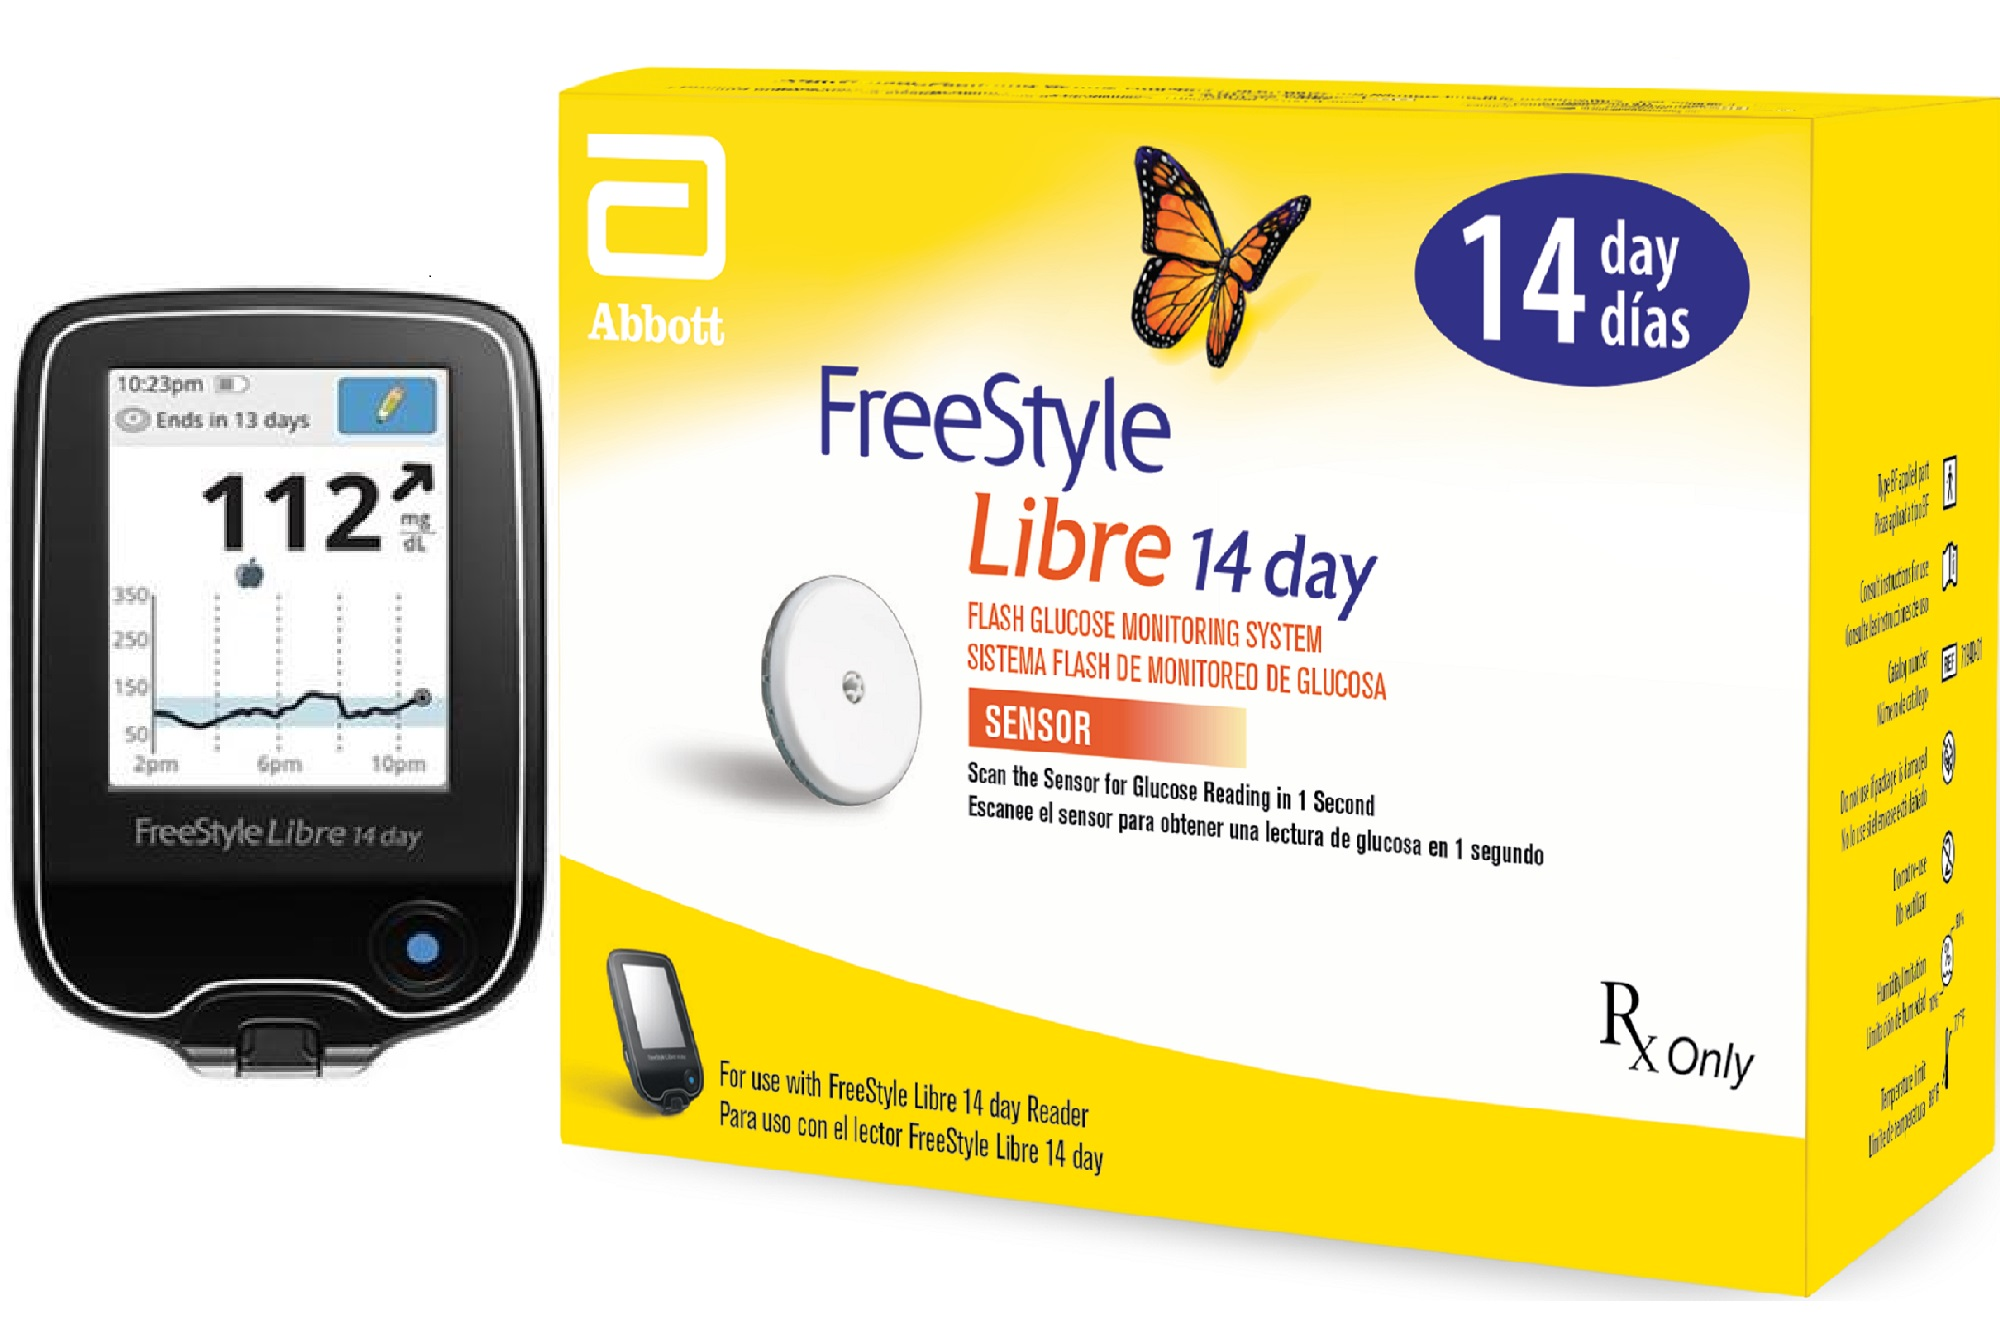 FDA Approves FreeStyle Libre 14 Day Flash Glucose Monitoring System - Clinical Advisor